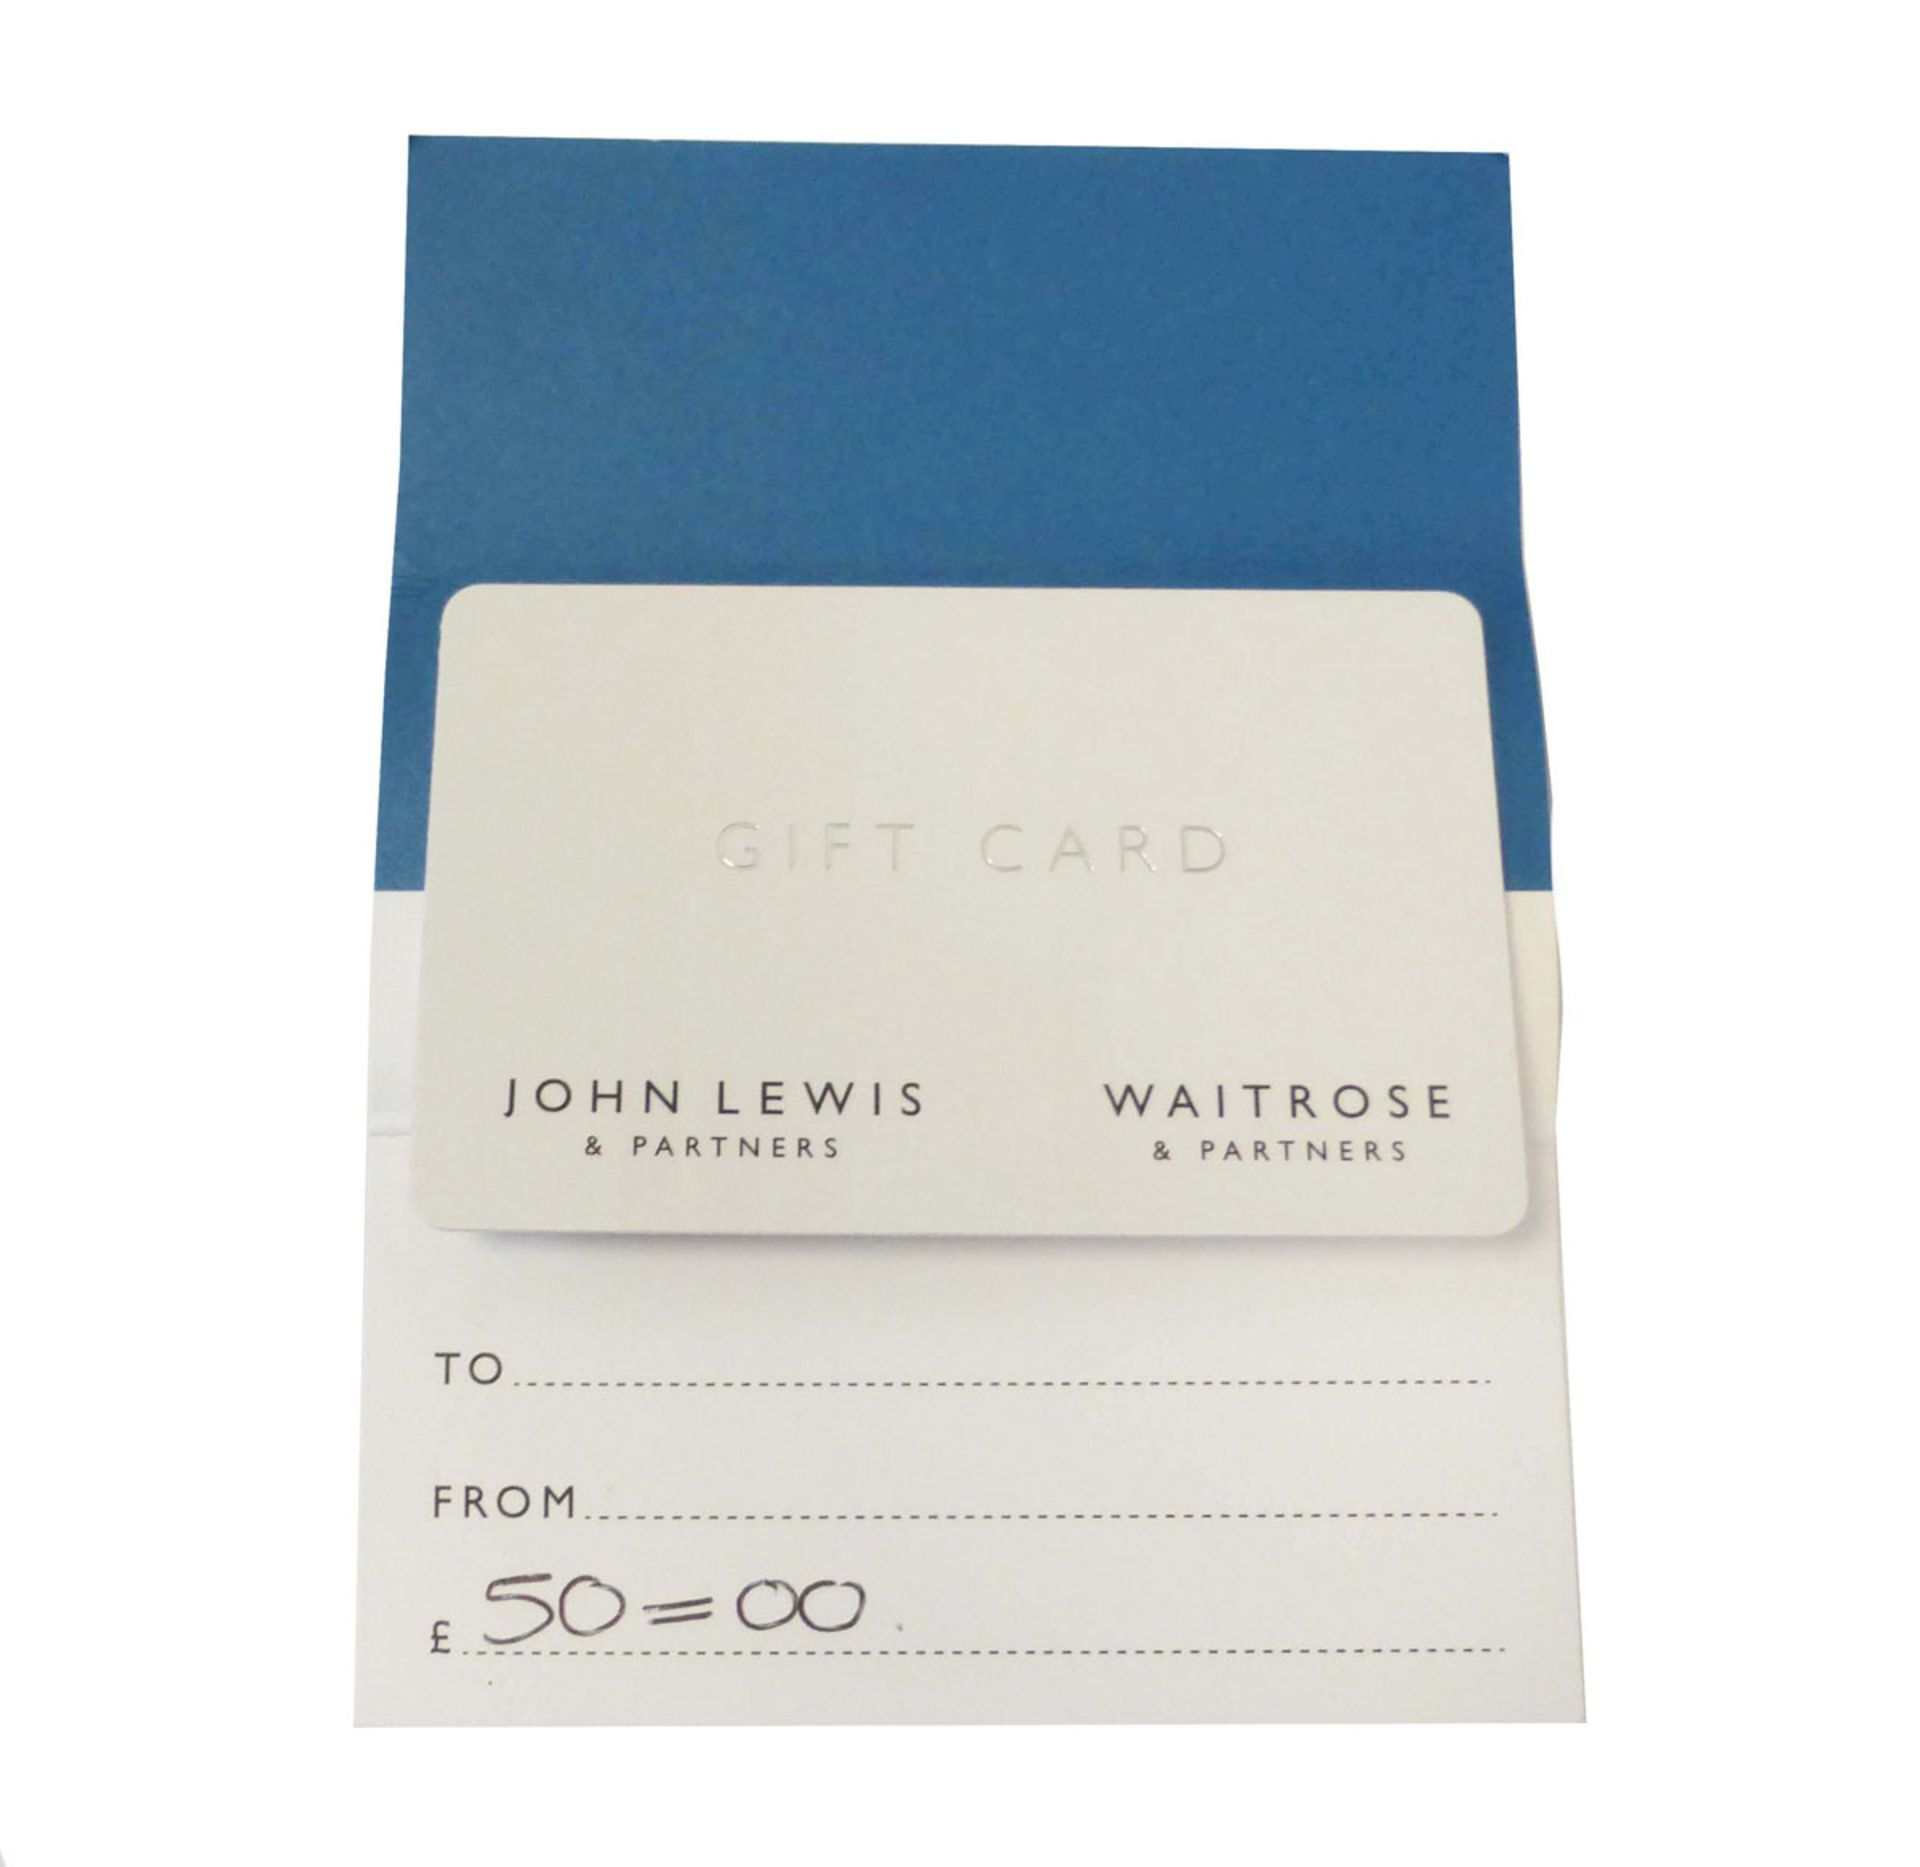 John Lewis (x1) - Total face value £50